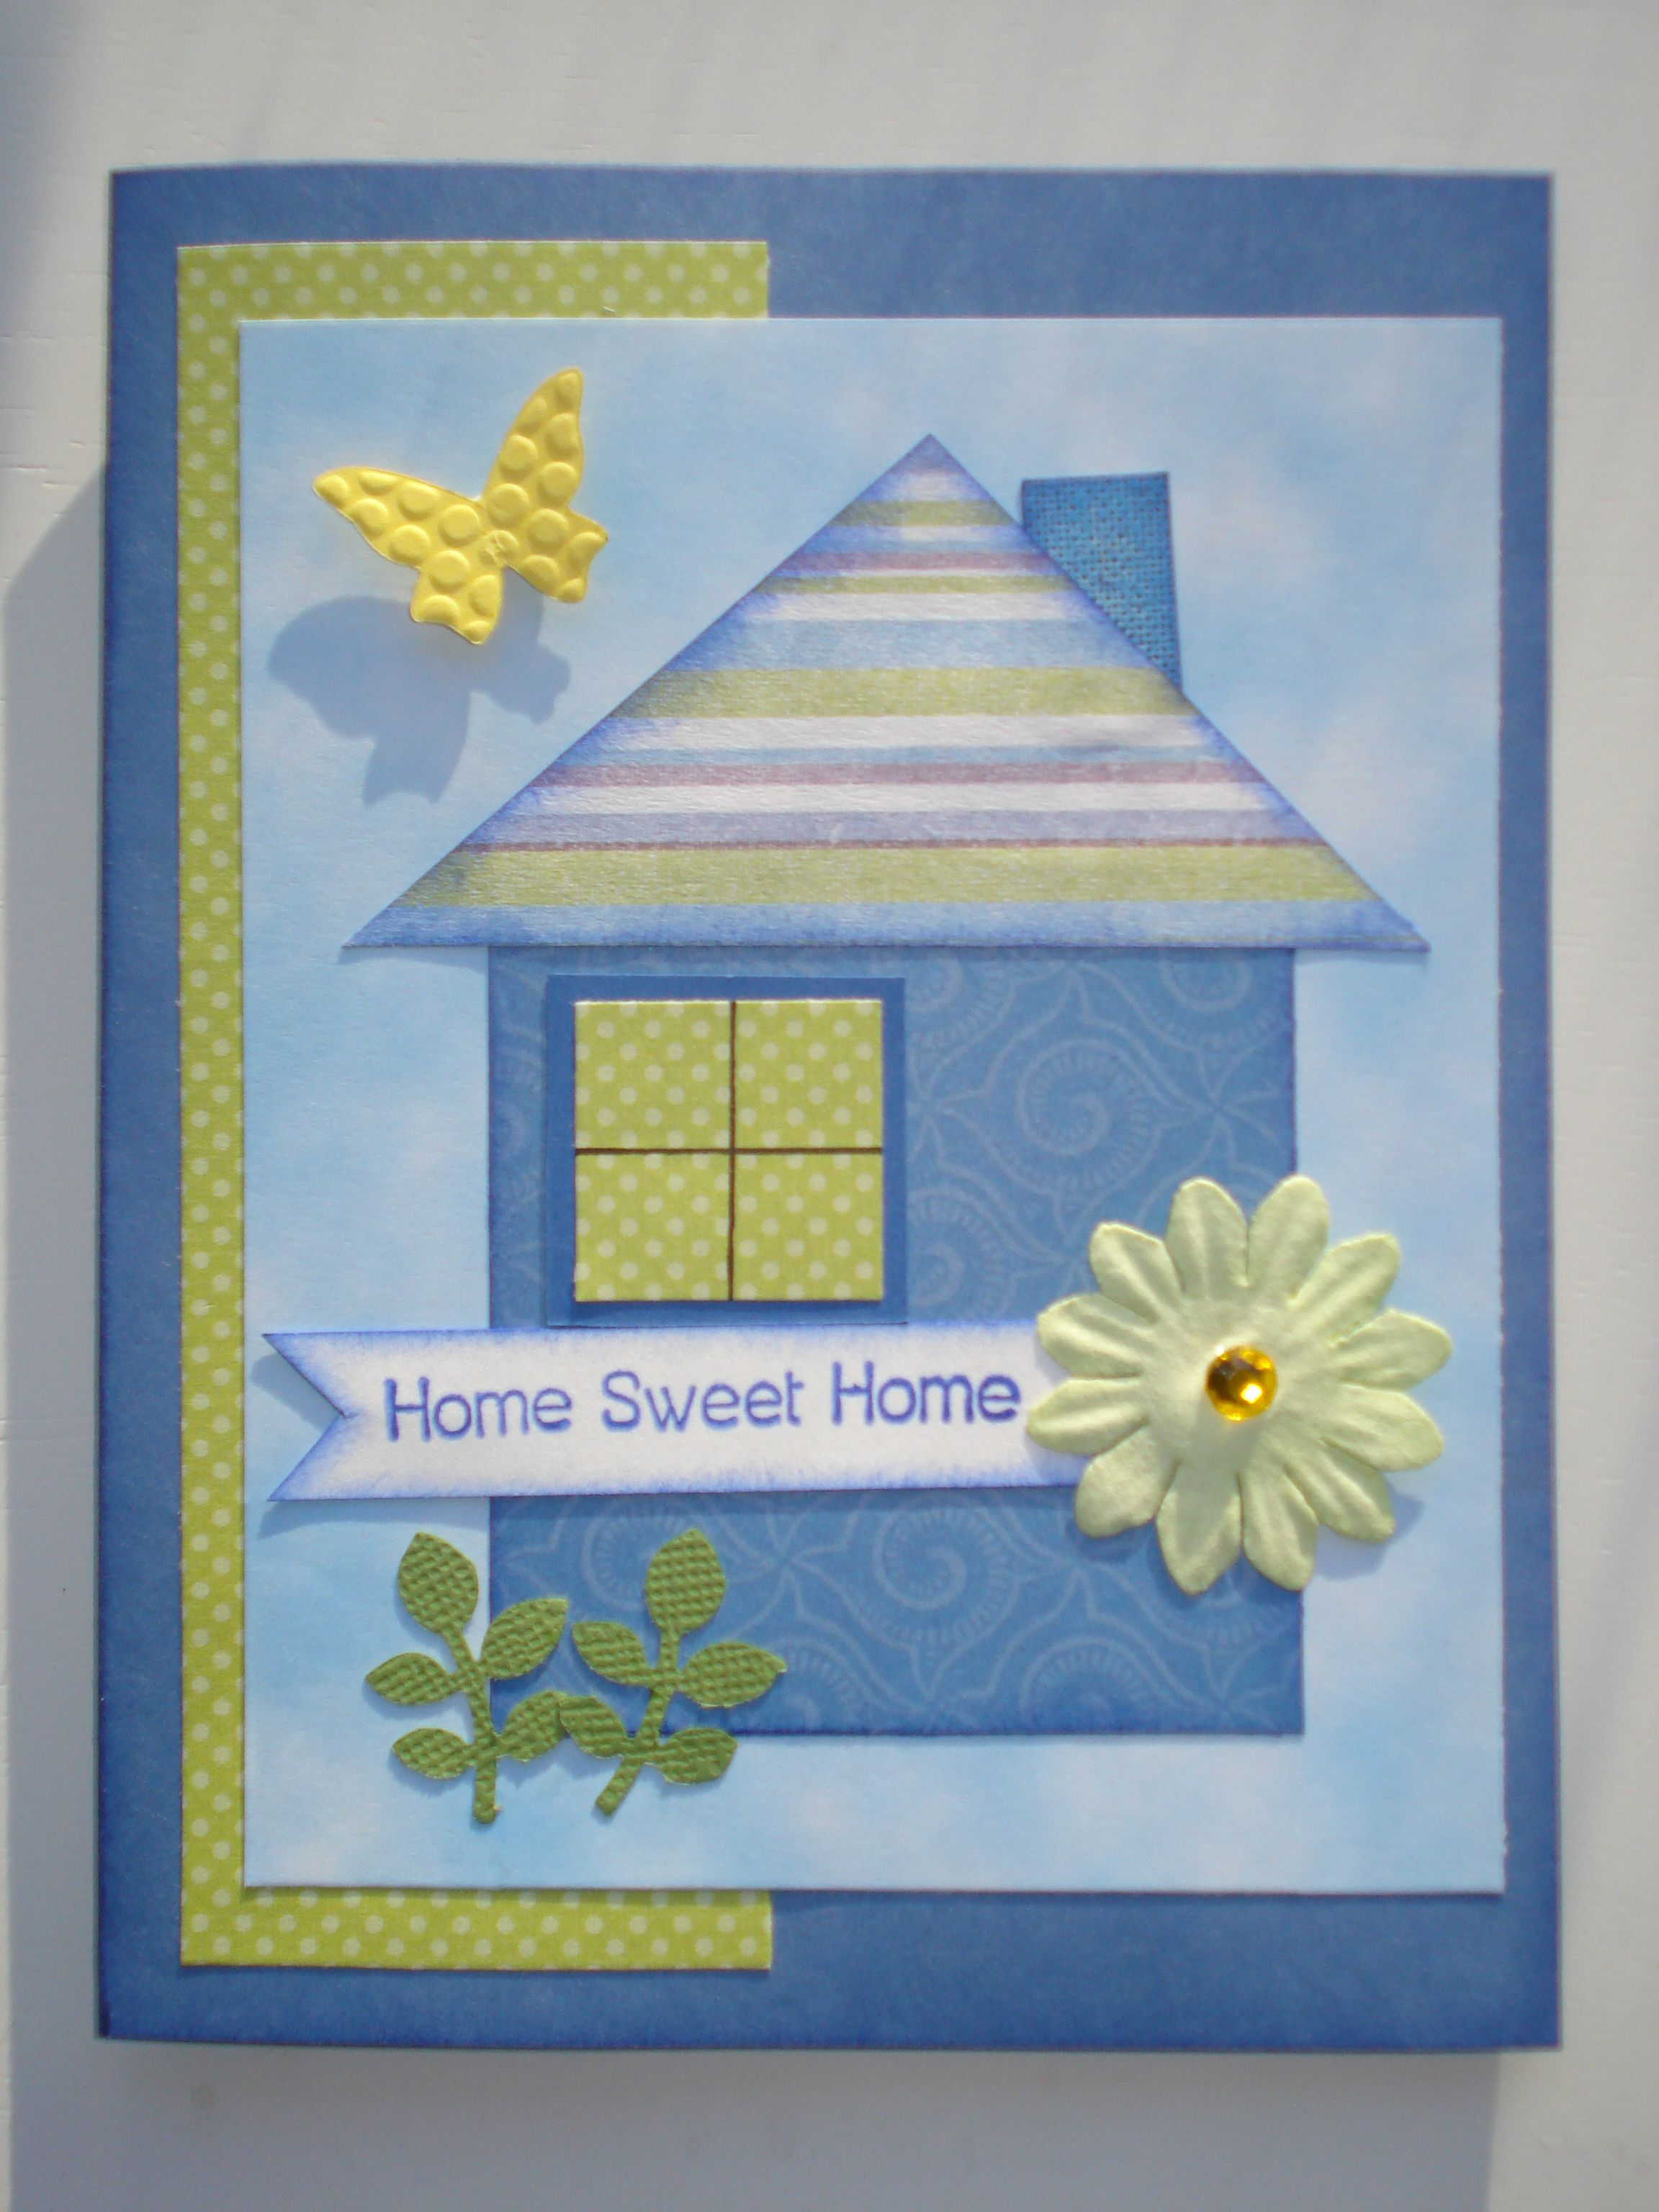 A Quick Fun New Home Card To Make From Leftover Scraps Of